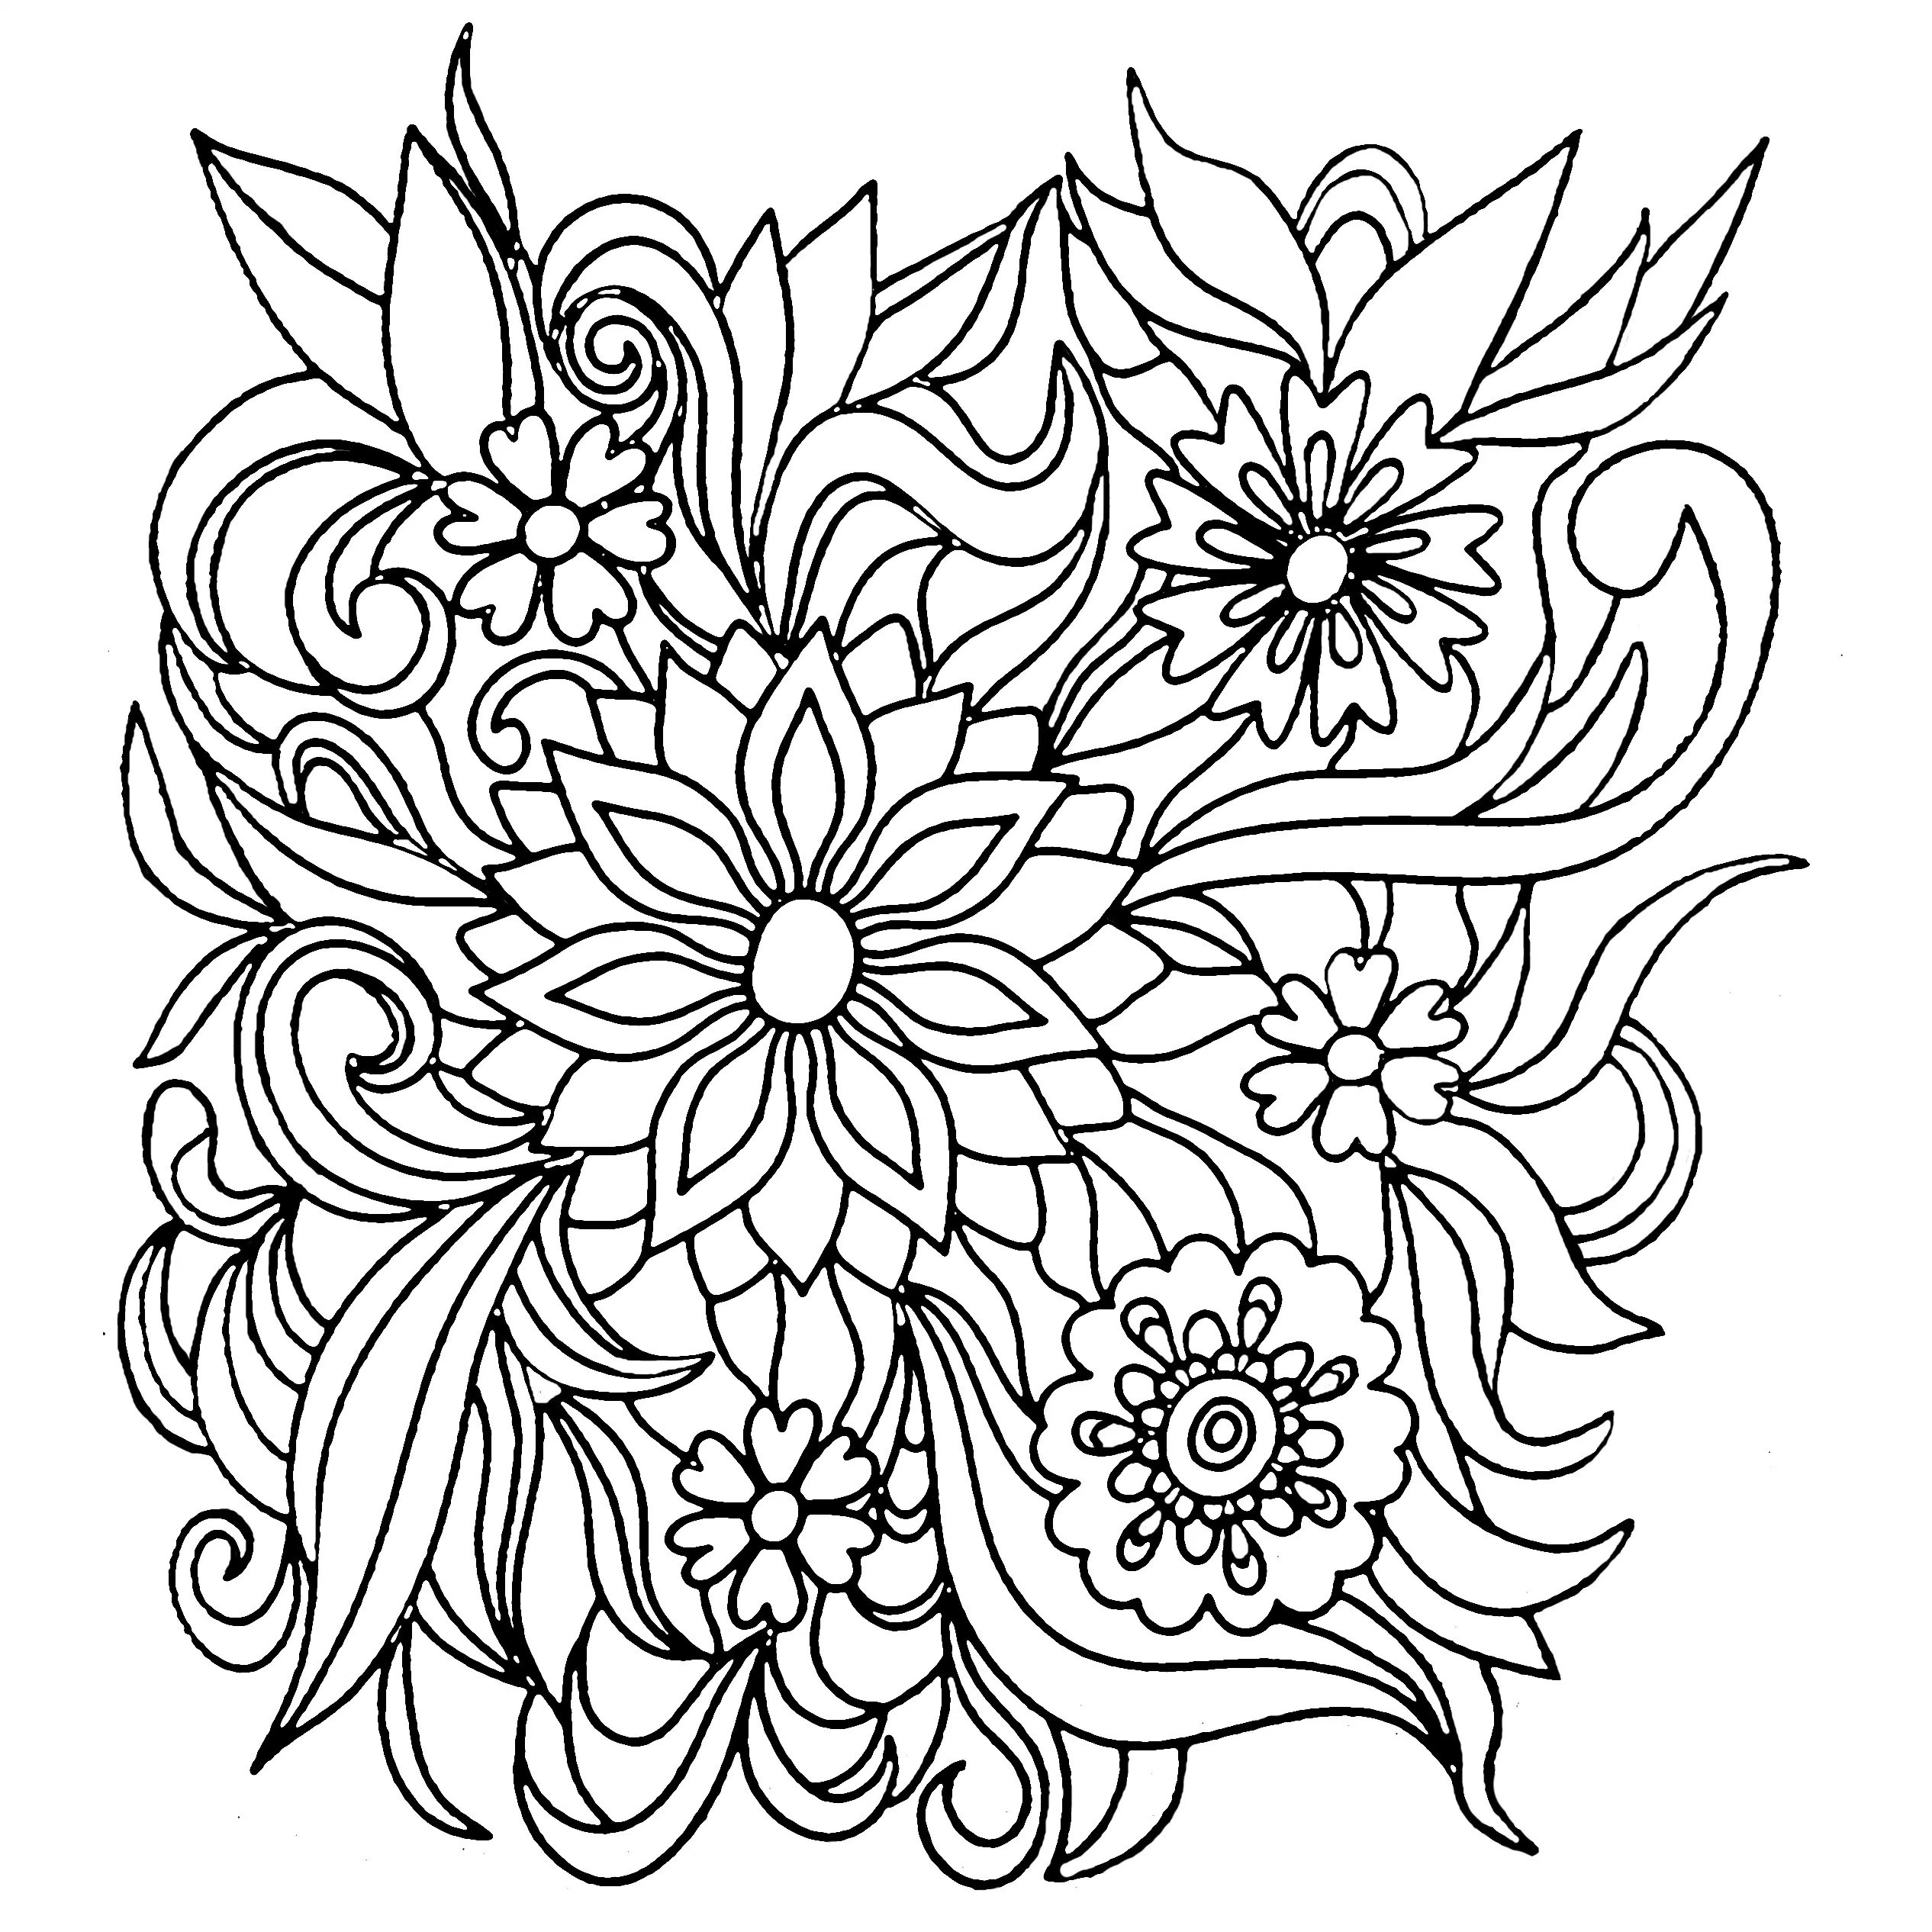 2532x2532 Palma And Monkey Nature Coloring Page For Kids New Nature Black